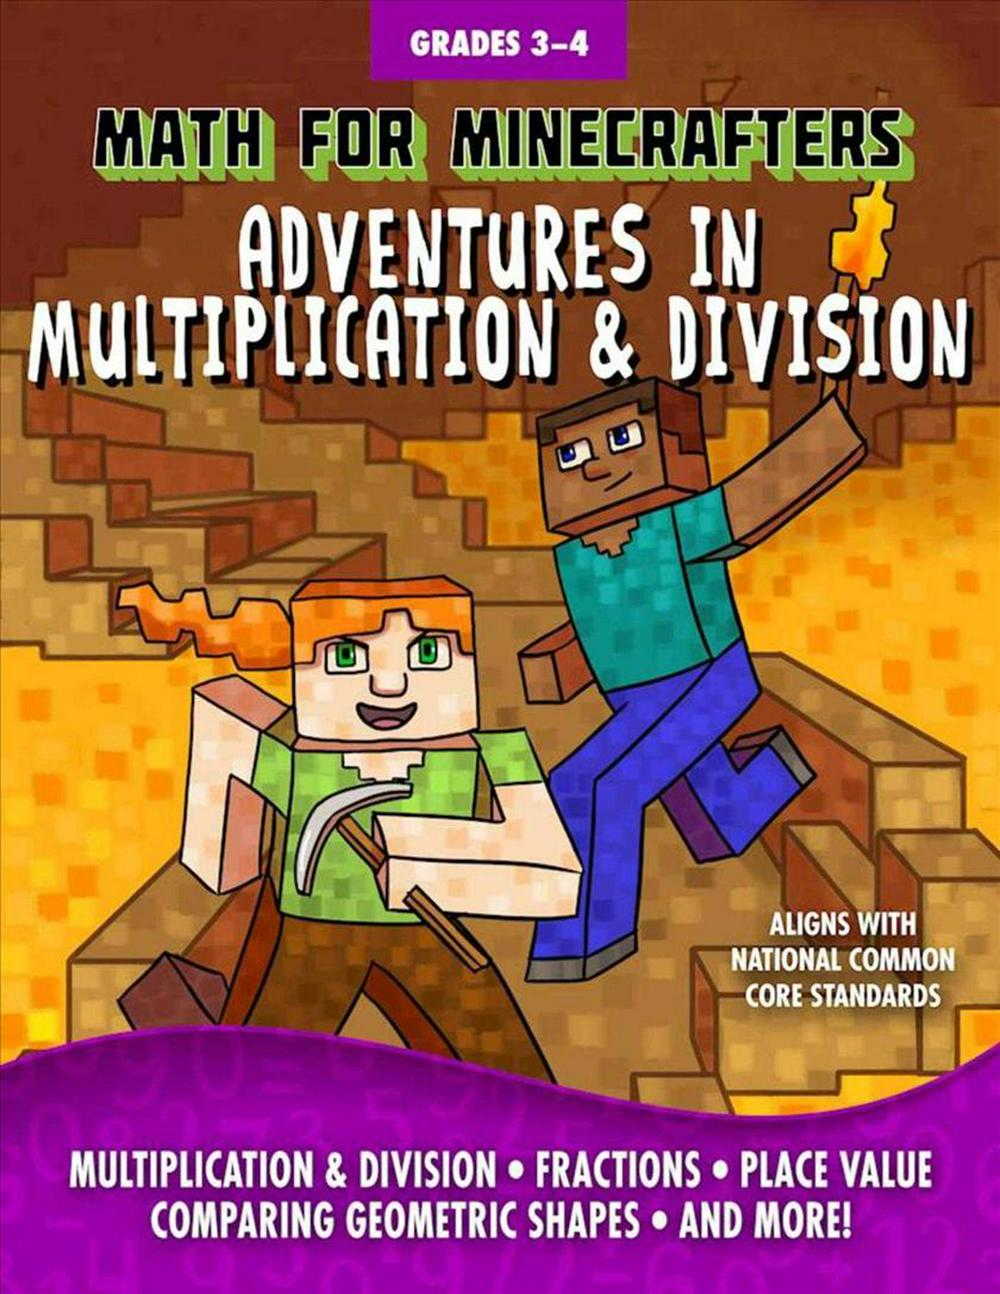 Math for MinecraftersAdventures in Multiplication & Division